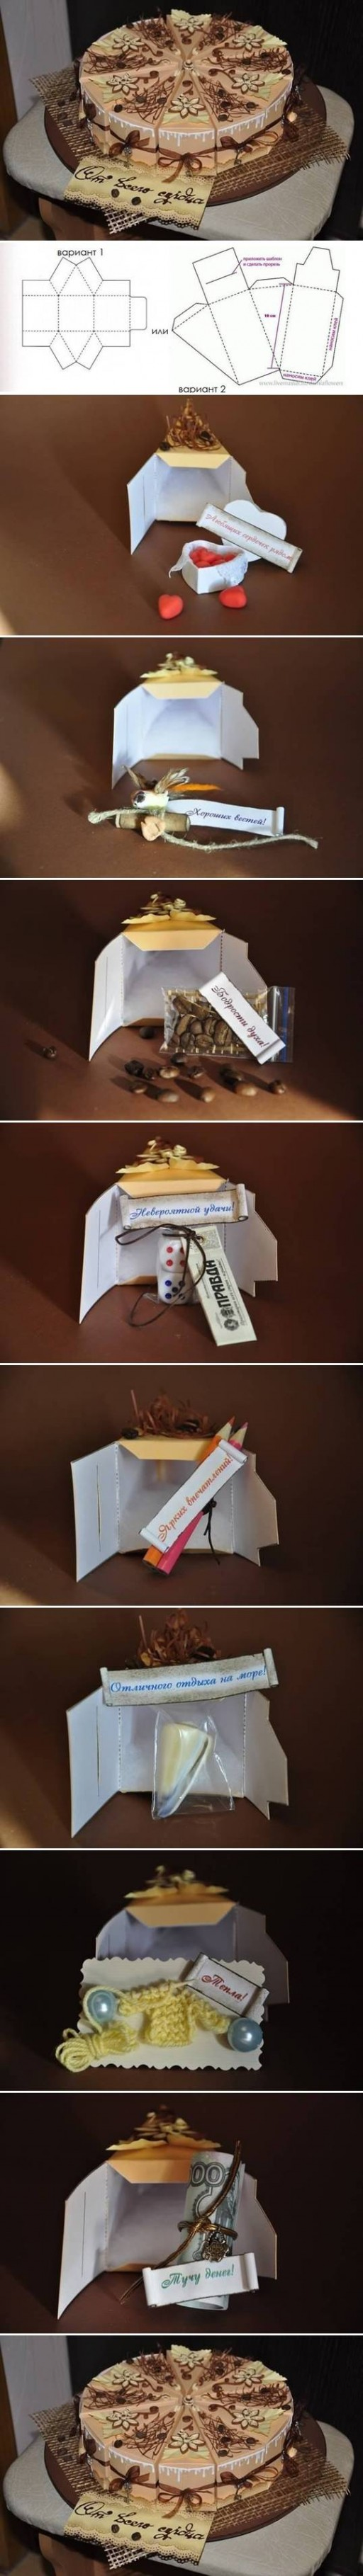 How to make Cake Gift Box Template step by step DIY tutorial instructions